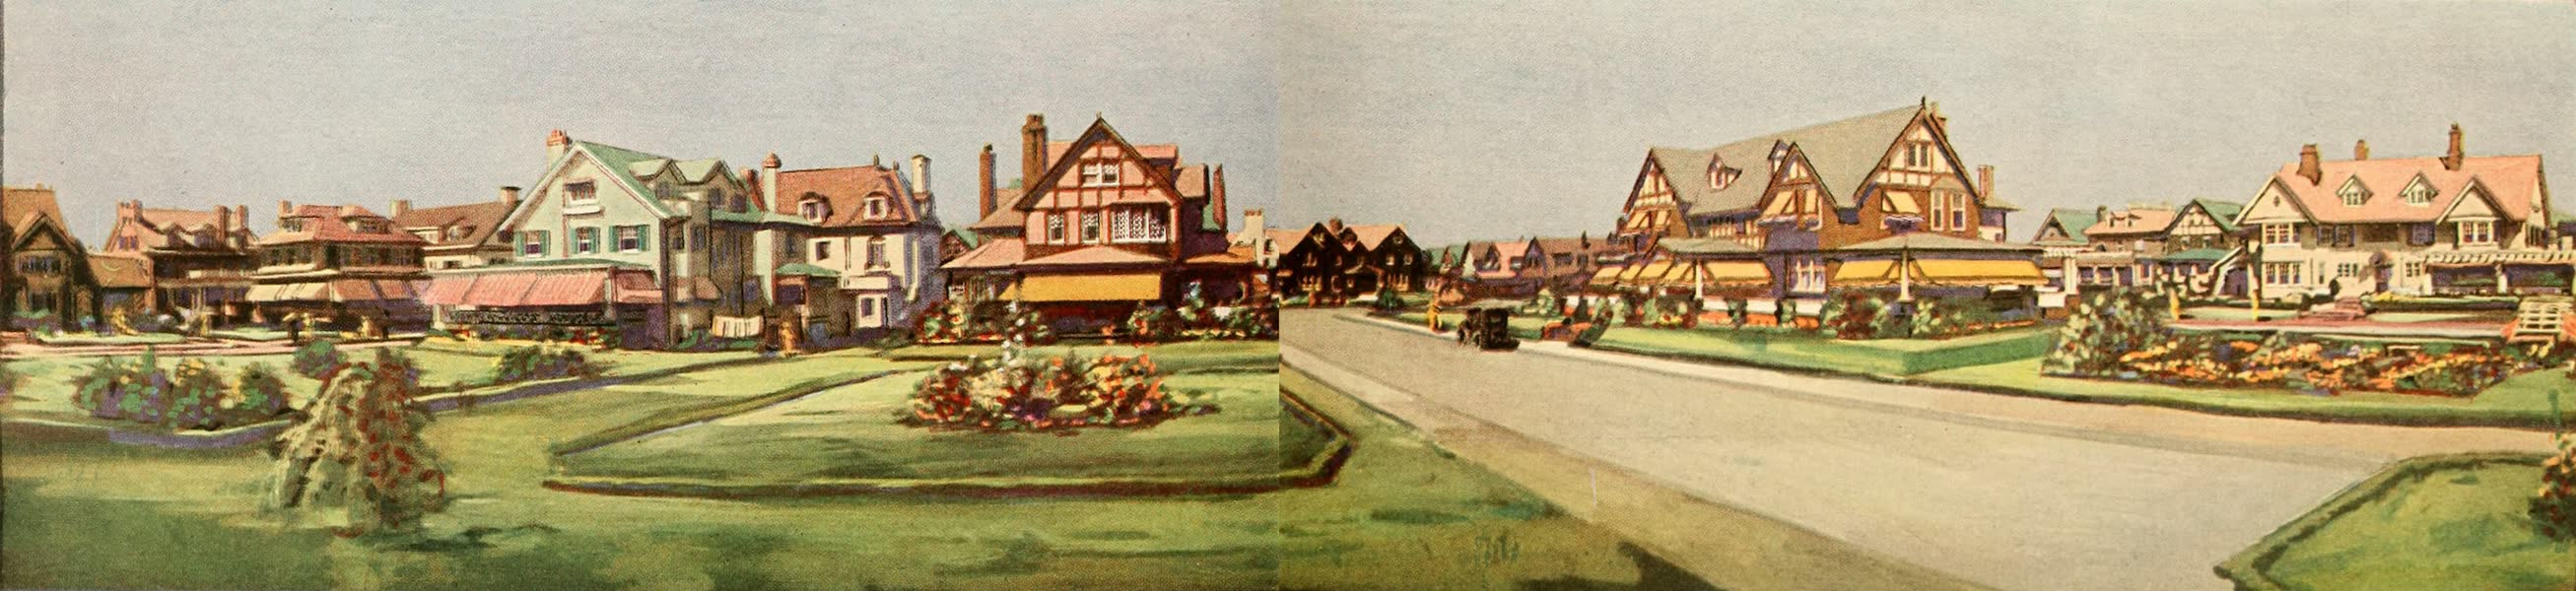 Atlantic City, the World's Play Ground - Panoramic View of One of Atlantic City's Many Beautiful Residential Sections (1922)